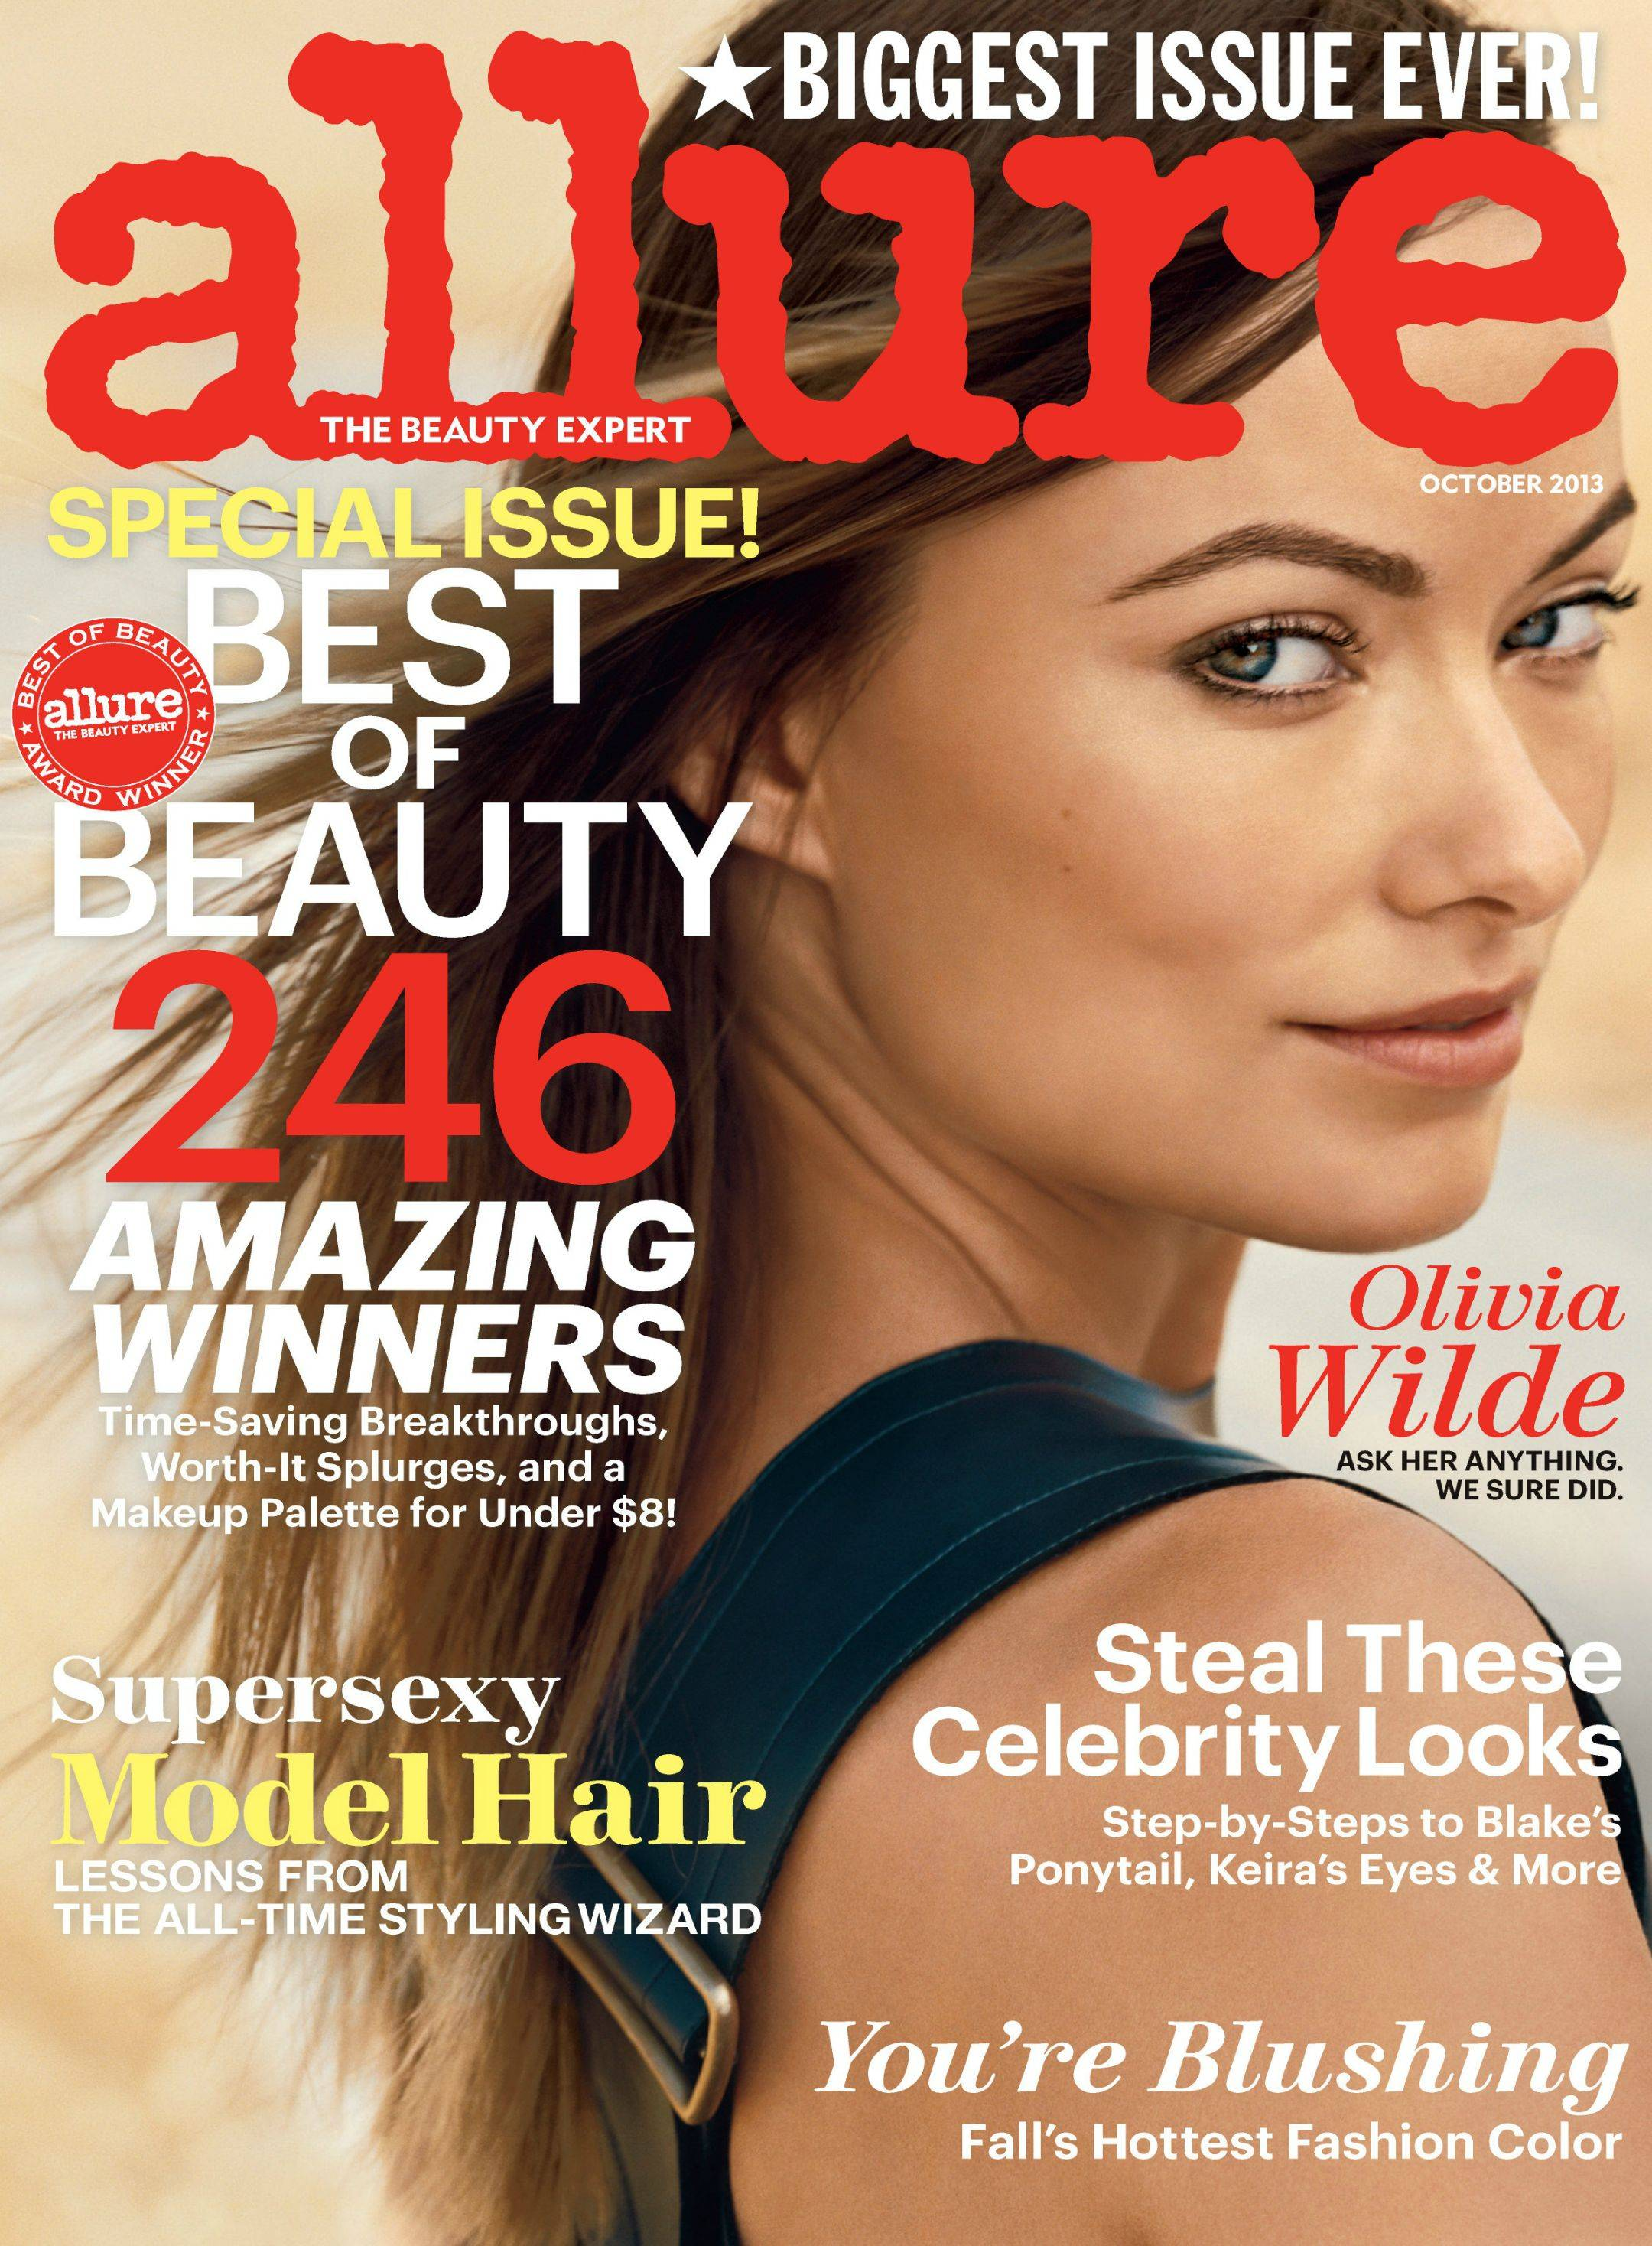 allure magazine wilde olivia october covers beautystat issue skincare treatment makeup magazines month aniston fame asked advice subscriptions wired latina